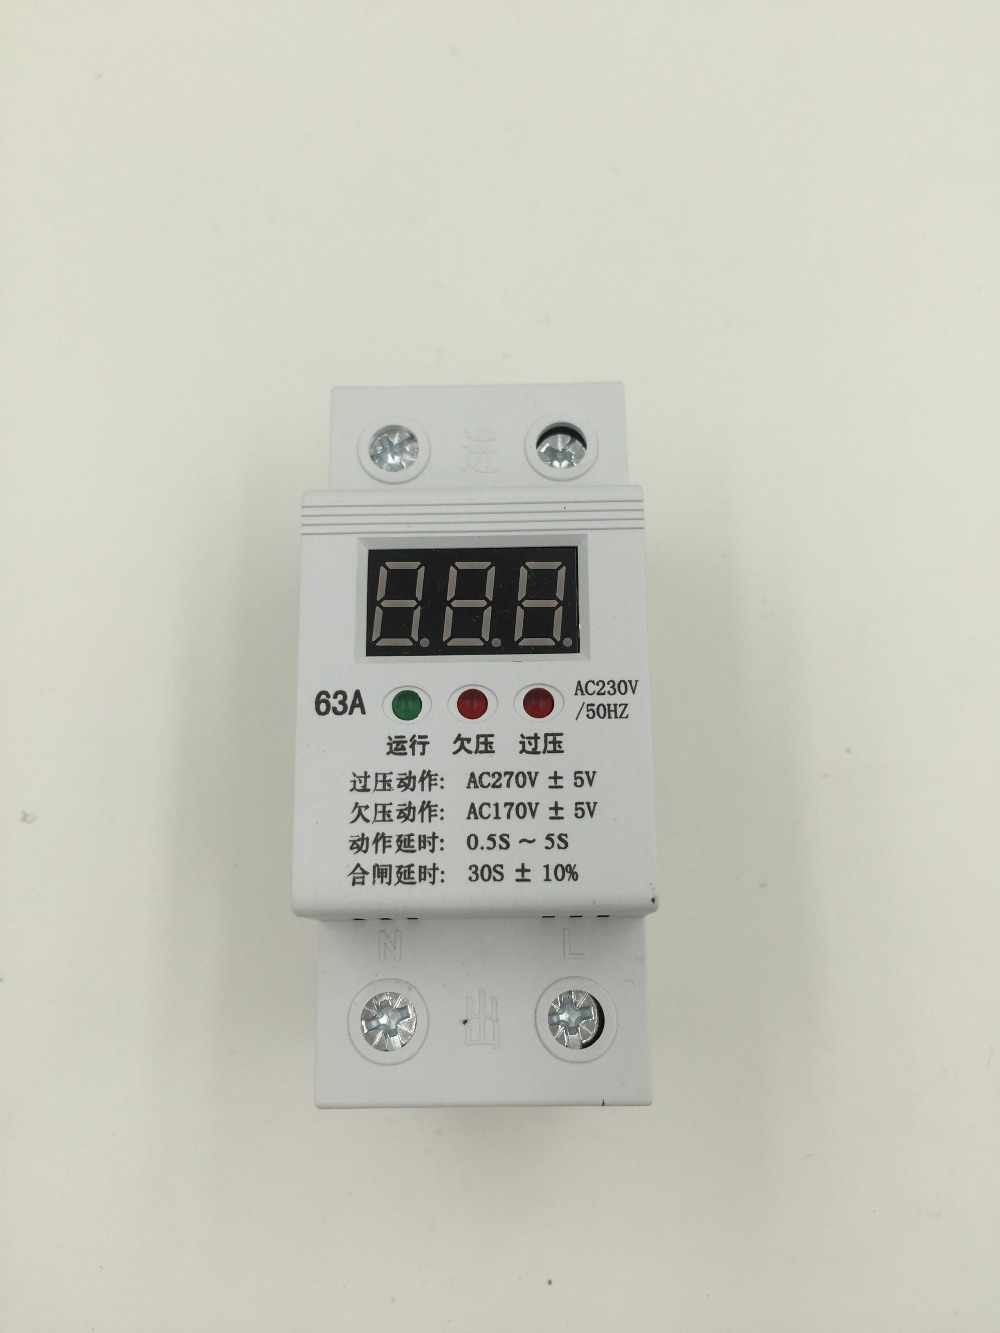 Self - Dual - over - under - voltage protection device LCD display fully automatic over voltage protection peter block stewardship choosing service over self interest